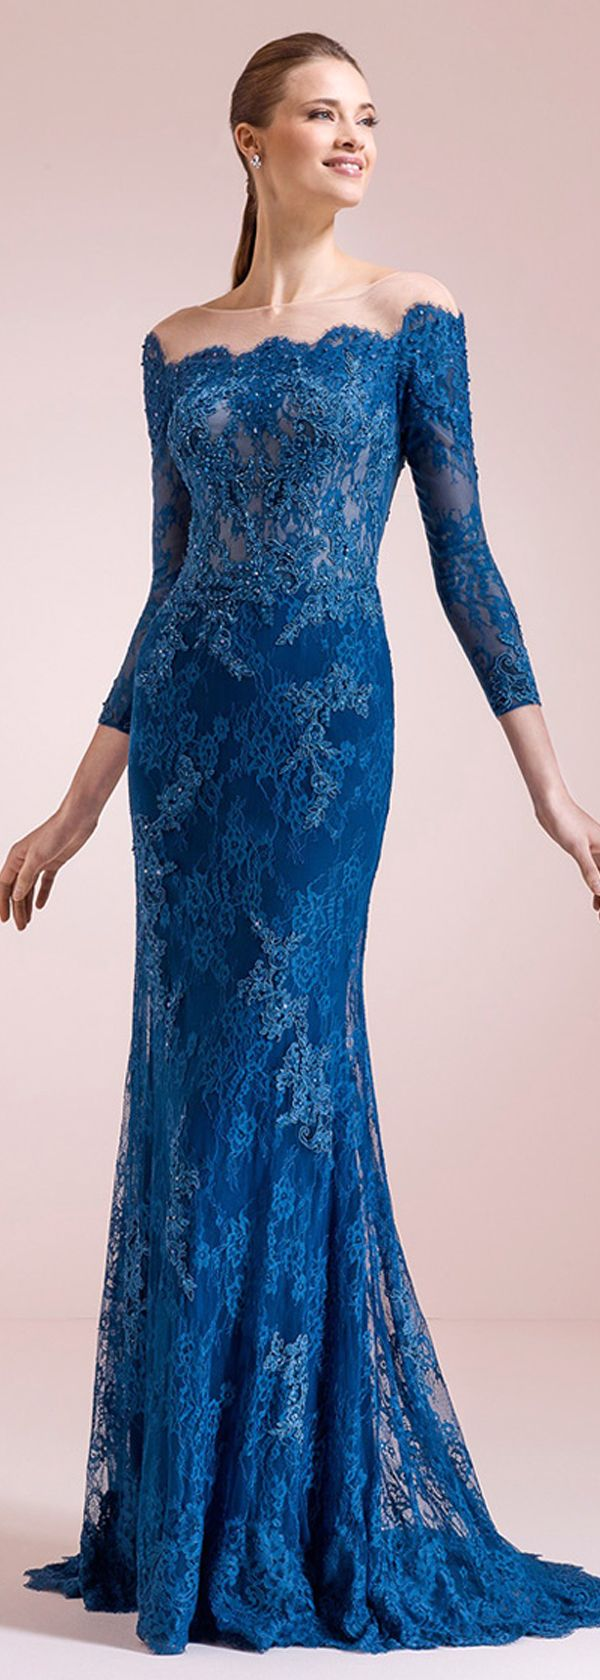 Glamorous Tulle & Lace Bateau Neckline Mermaid Evening Dresses With Lace Appliques